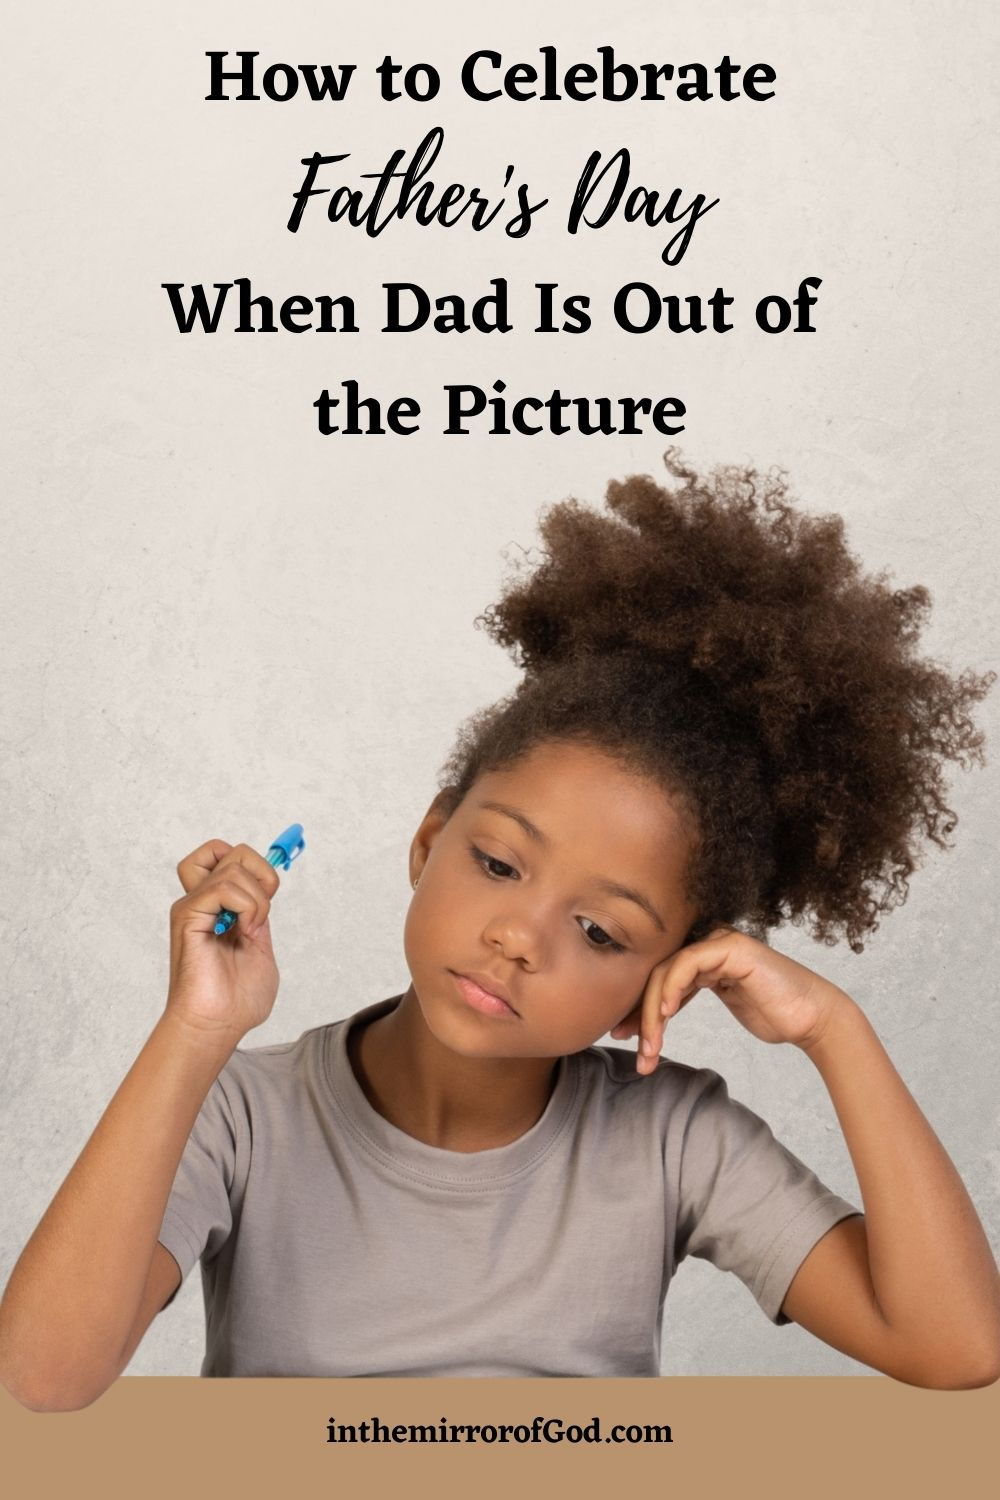 How to Celebrate Father's Day When Dad is Out of the Picture